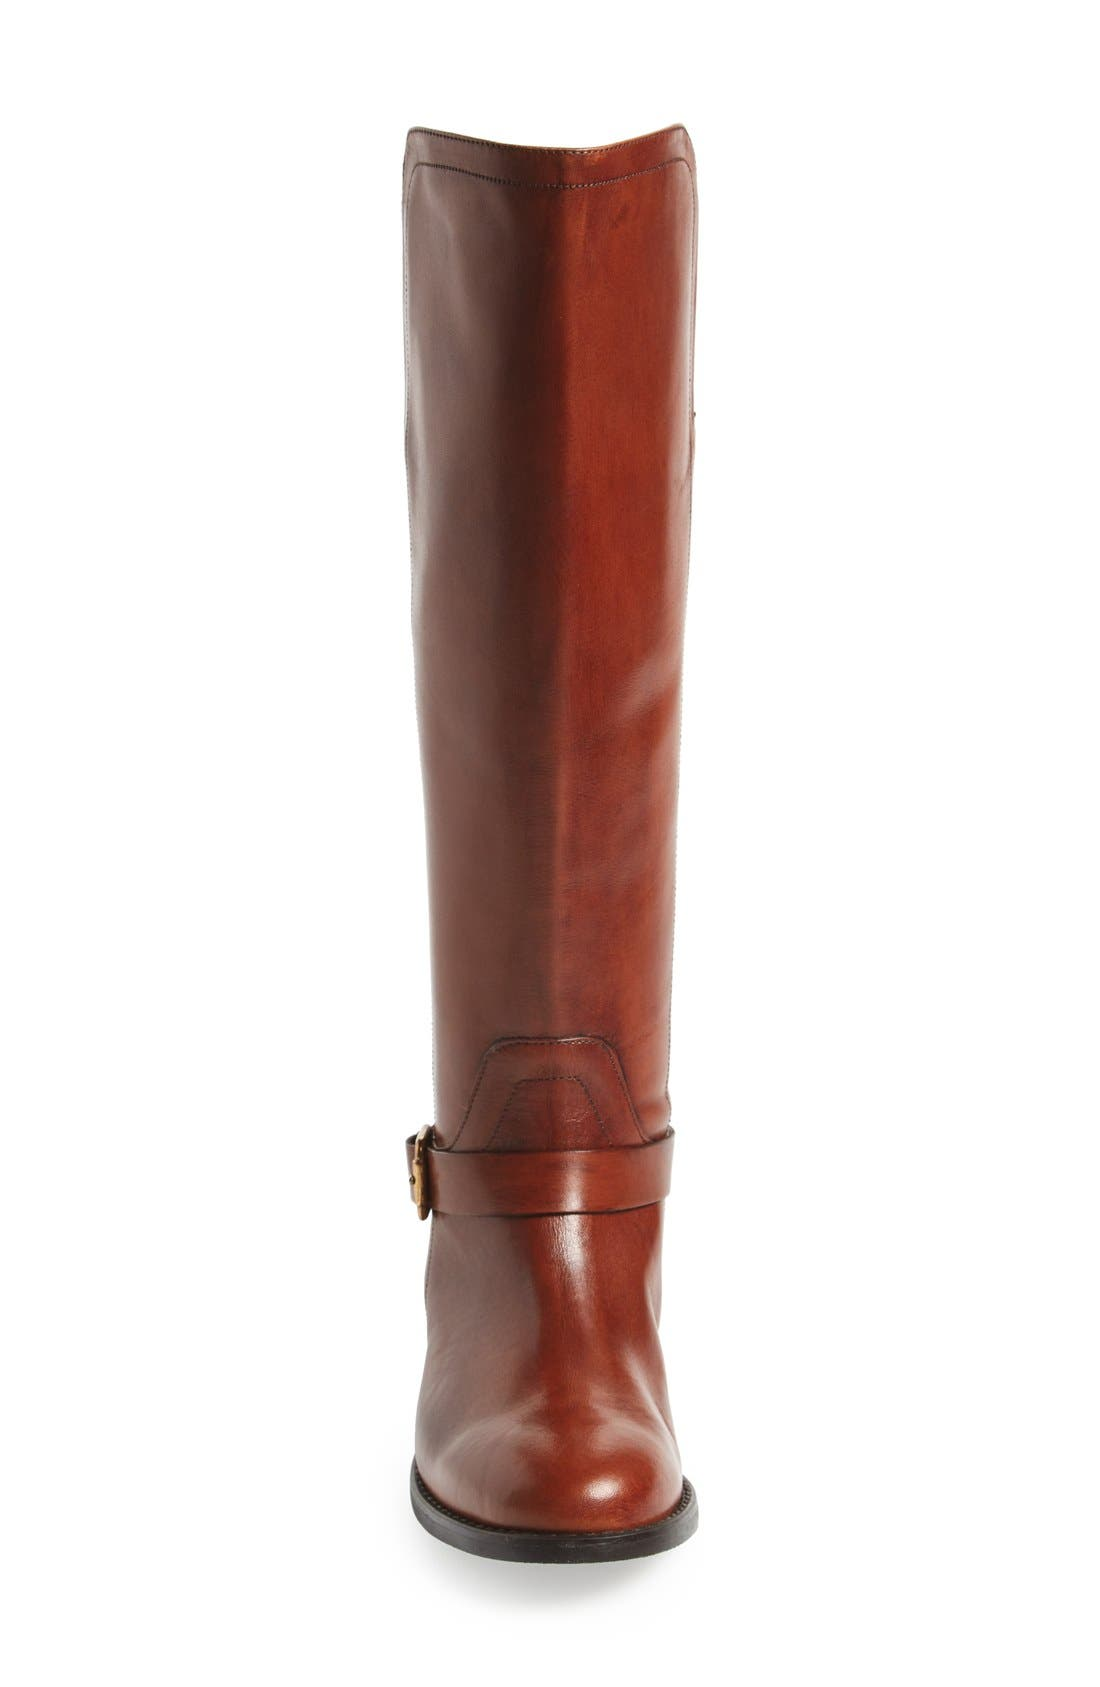 Esaitaly Tall Riding Boot,                             Alternate thumbnail 3, color,                             215